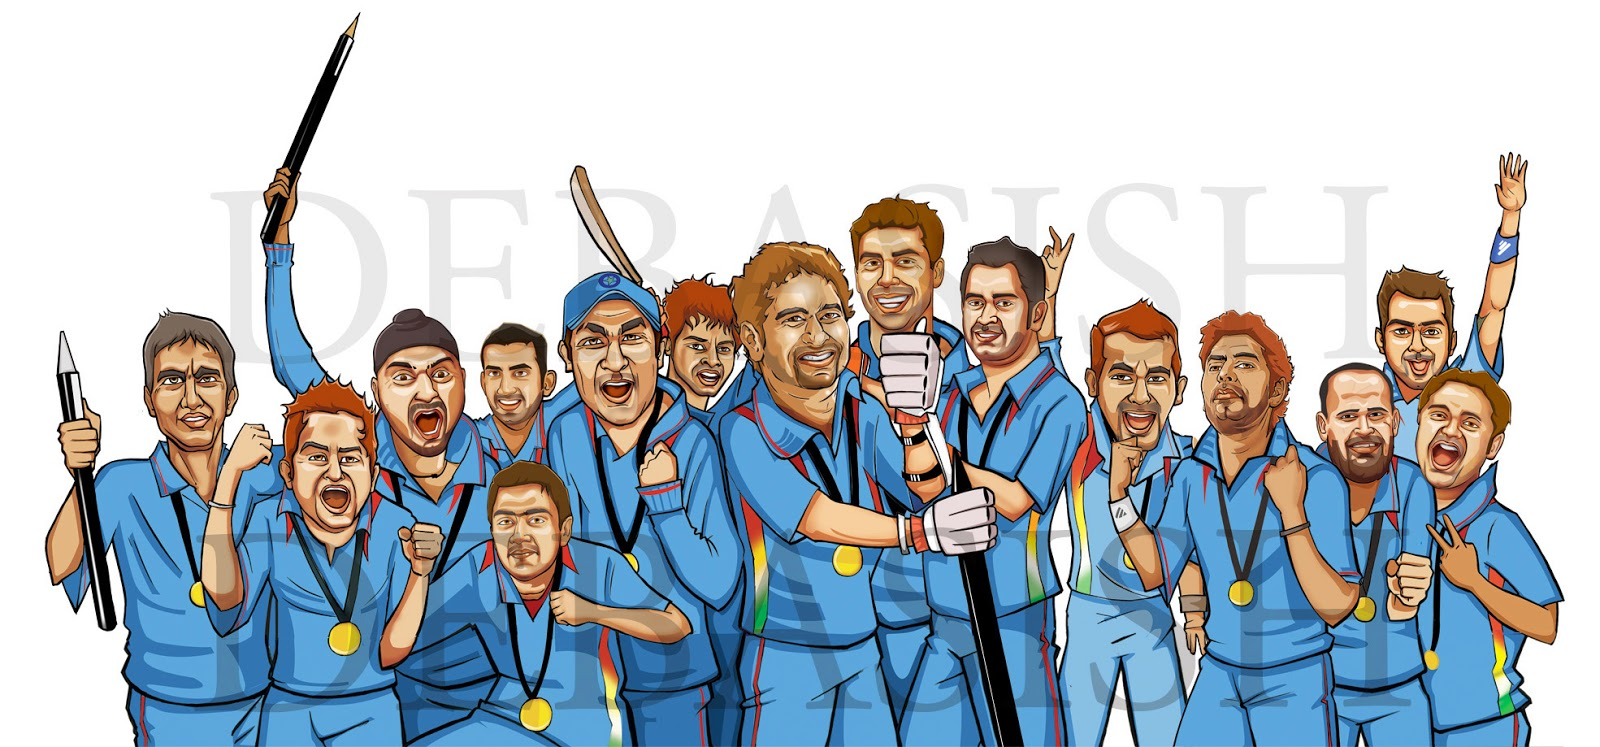 Cricket Team Clipart.